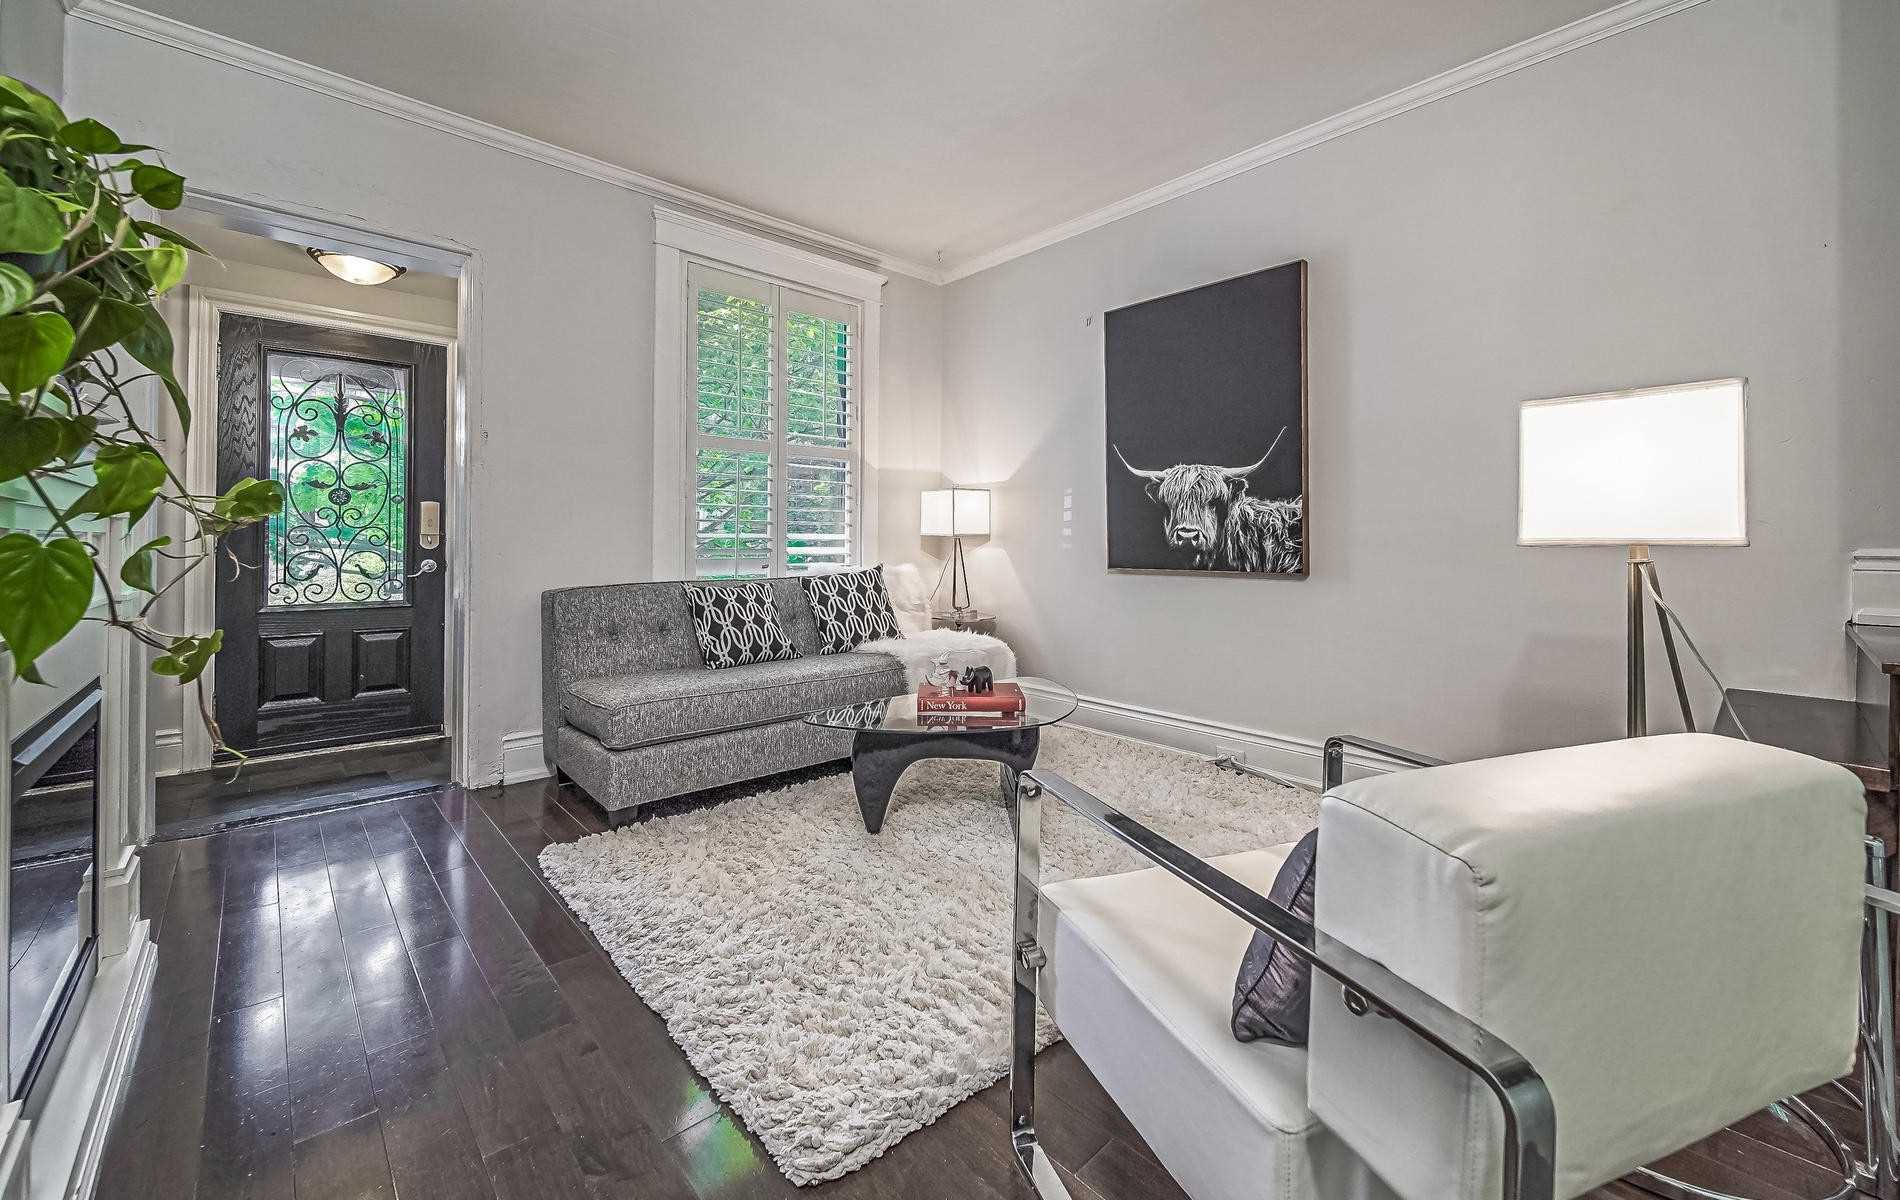 Main Photo: 195 Munro Street in Toronto: South Riverdale House (2-Storey) for sale (Toronto E01)  : MLS®# E4849891